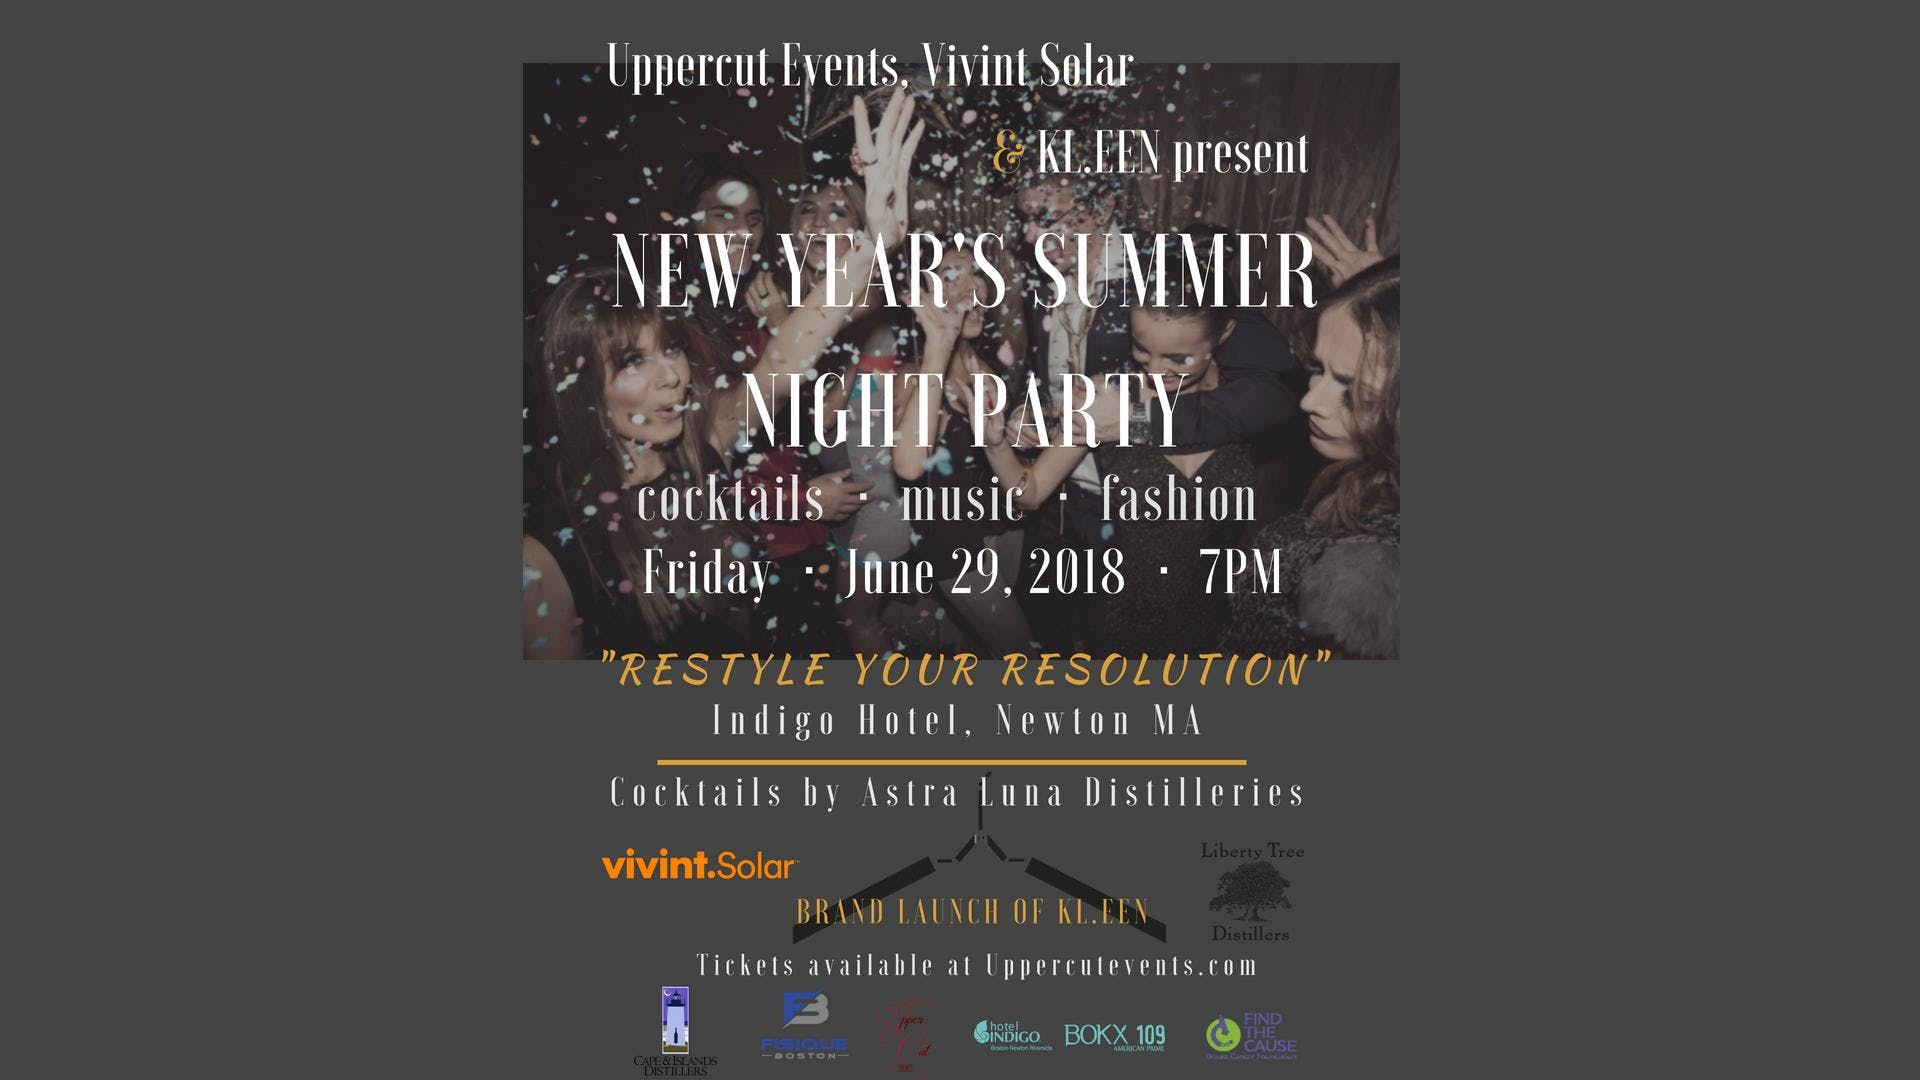 New Years Summer Night Party